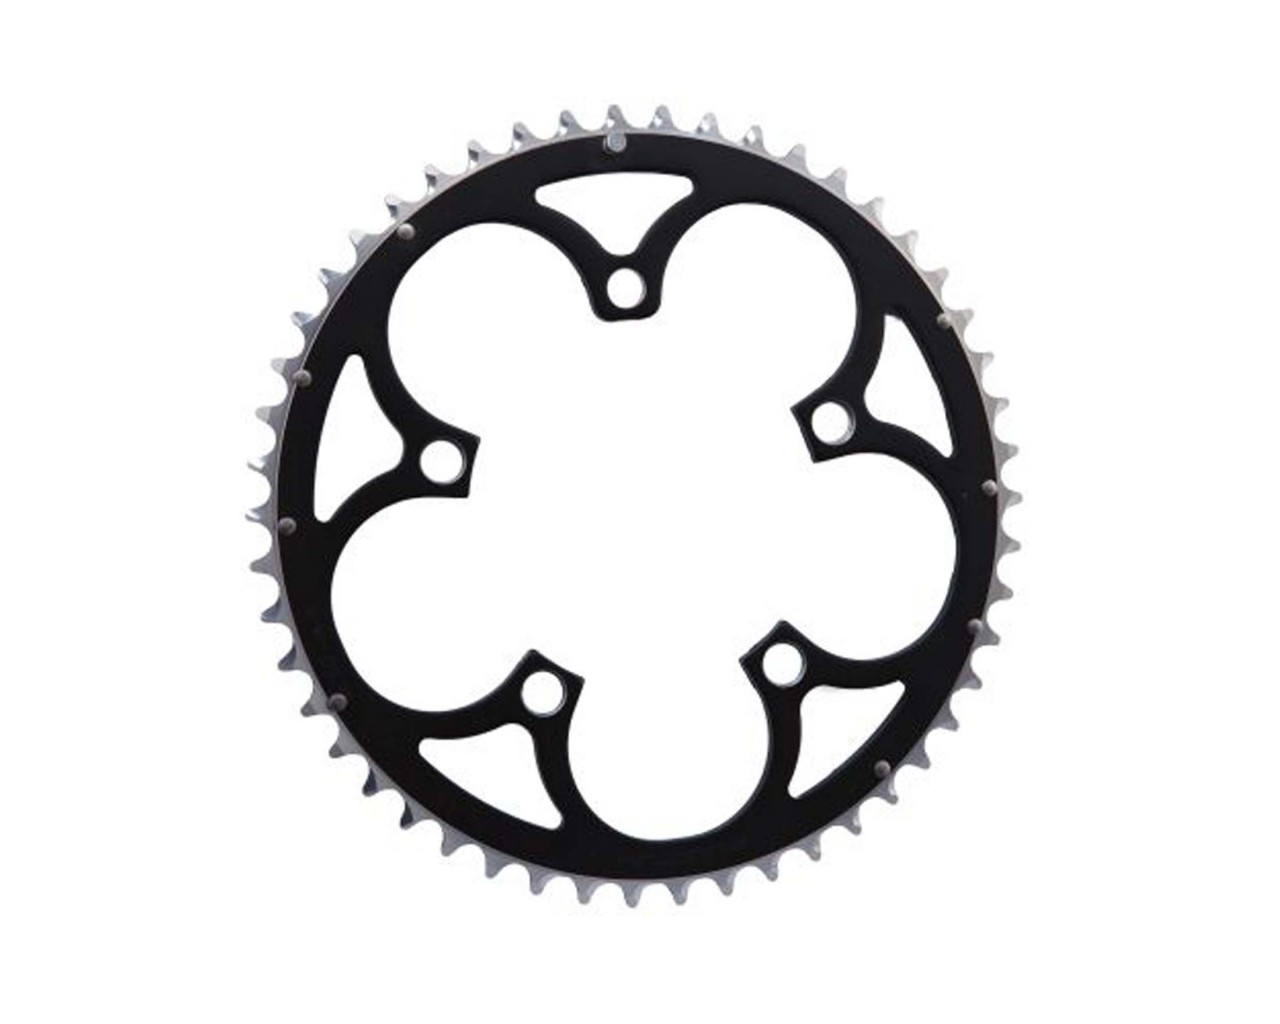 Fulcrum Chainring CC-RS052 52Z for Crankset TORQ RS 52/39